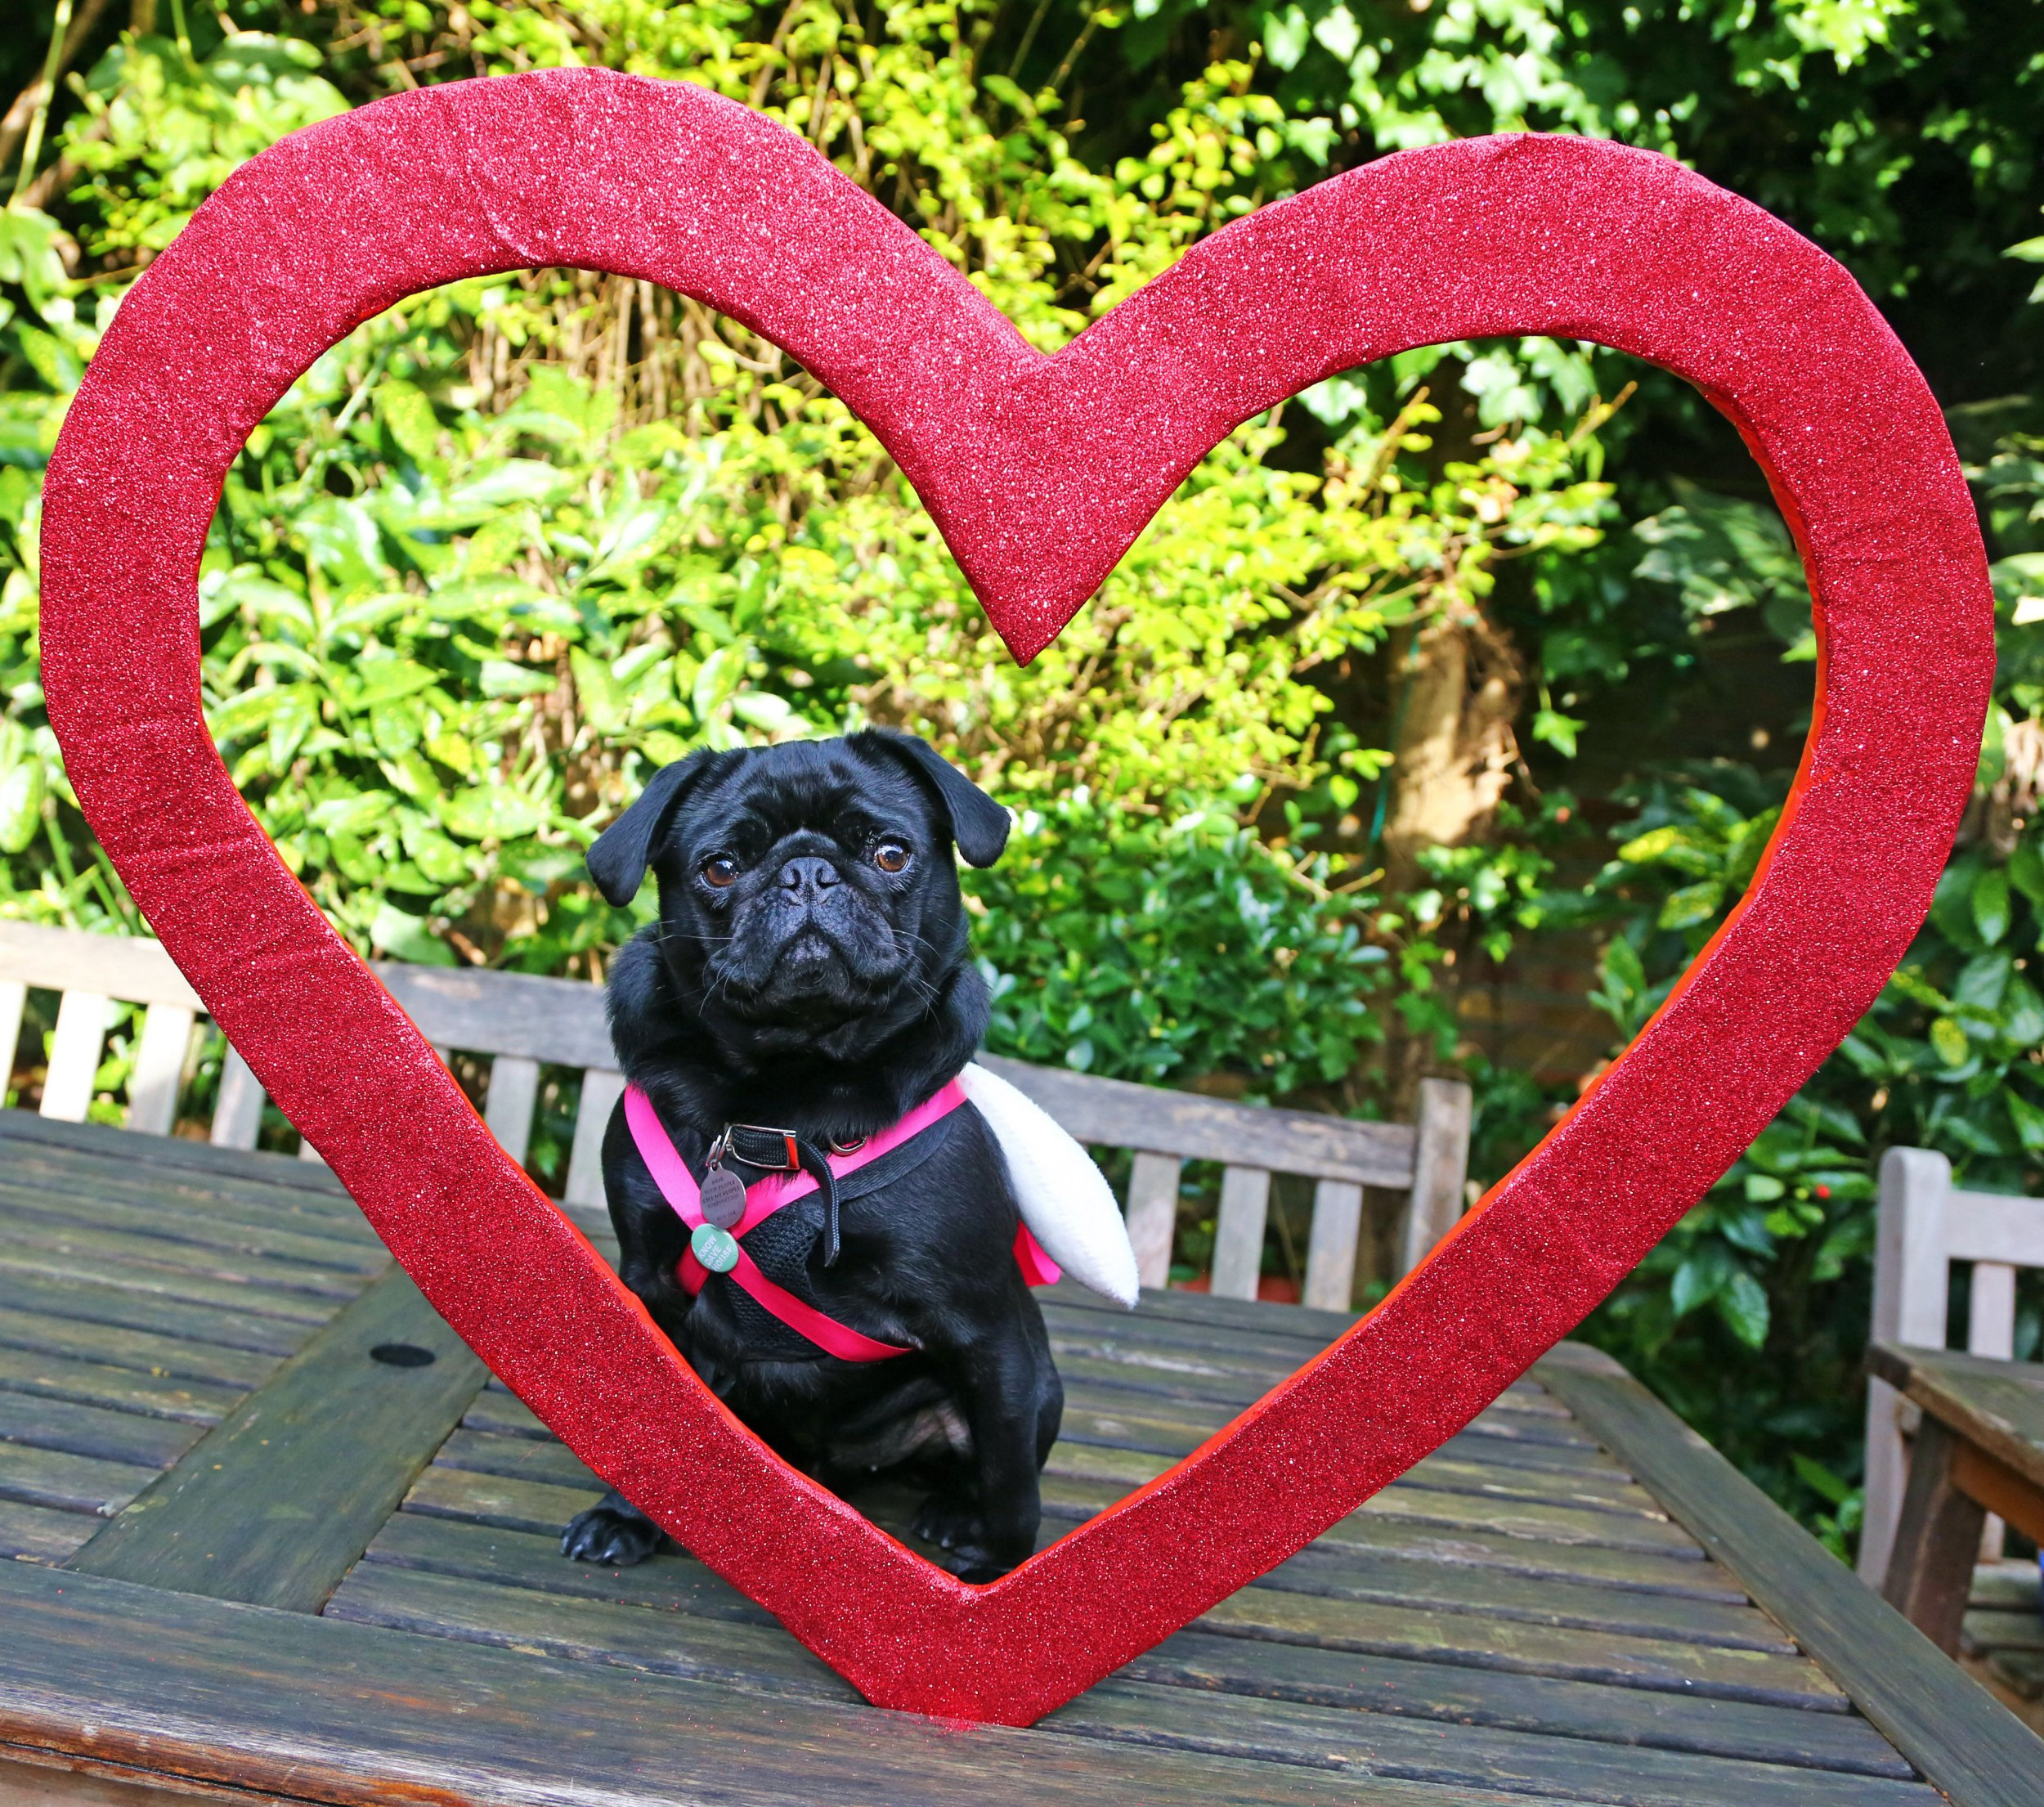 There's a Valentine's dog walk this weekend for humans and hounds to celebrate their love